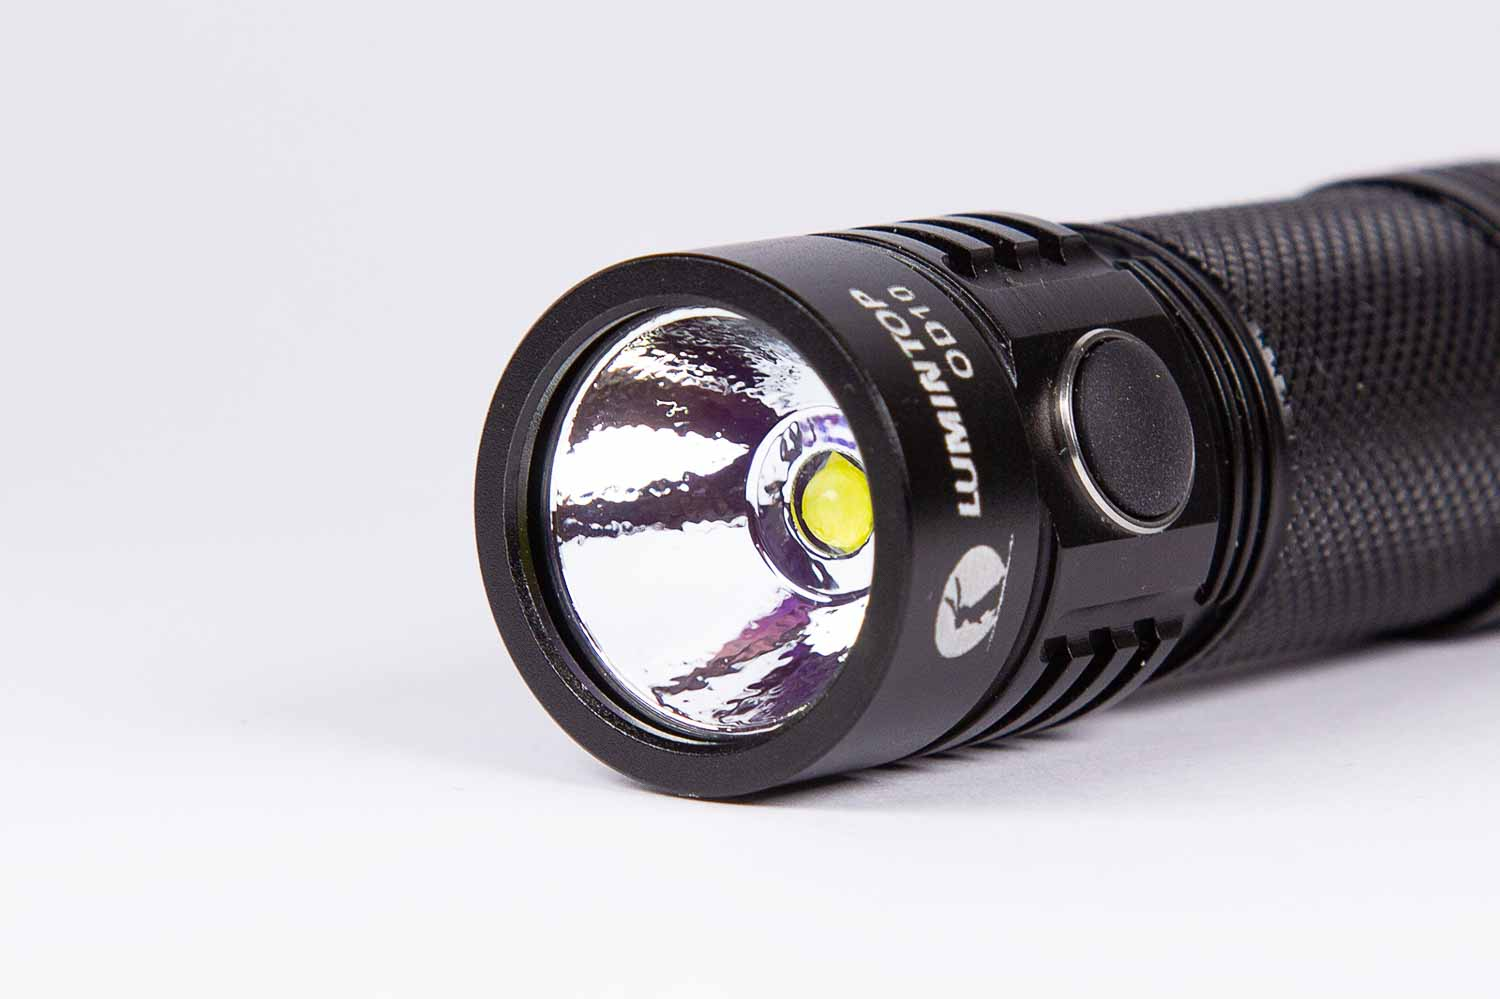 Lumintop OD10 bezel reflector and LED